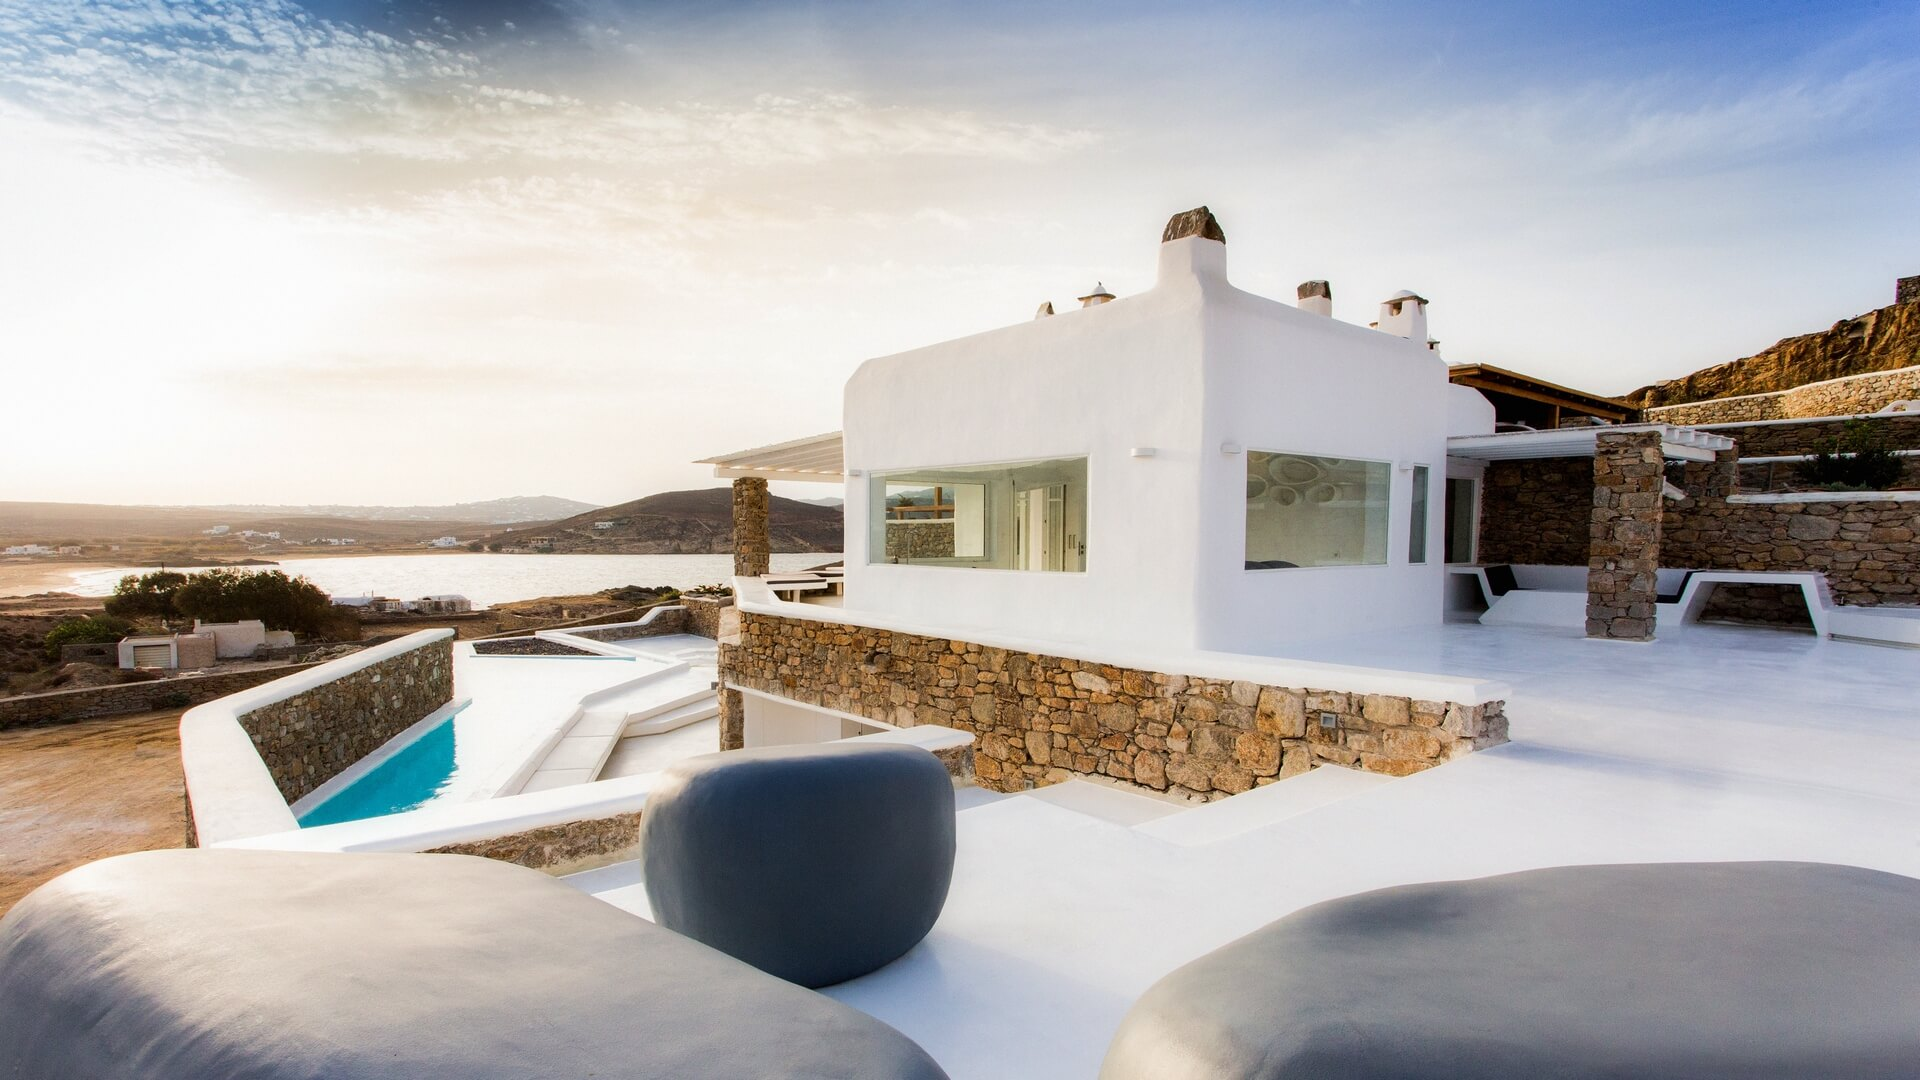 Best Island Beaches For Partying Mykonos St Barts: Villa Serenity With Private Pool In Mykonos